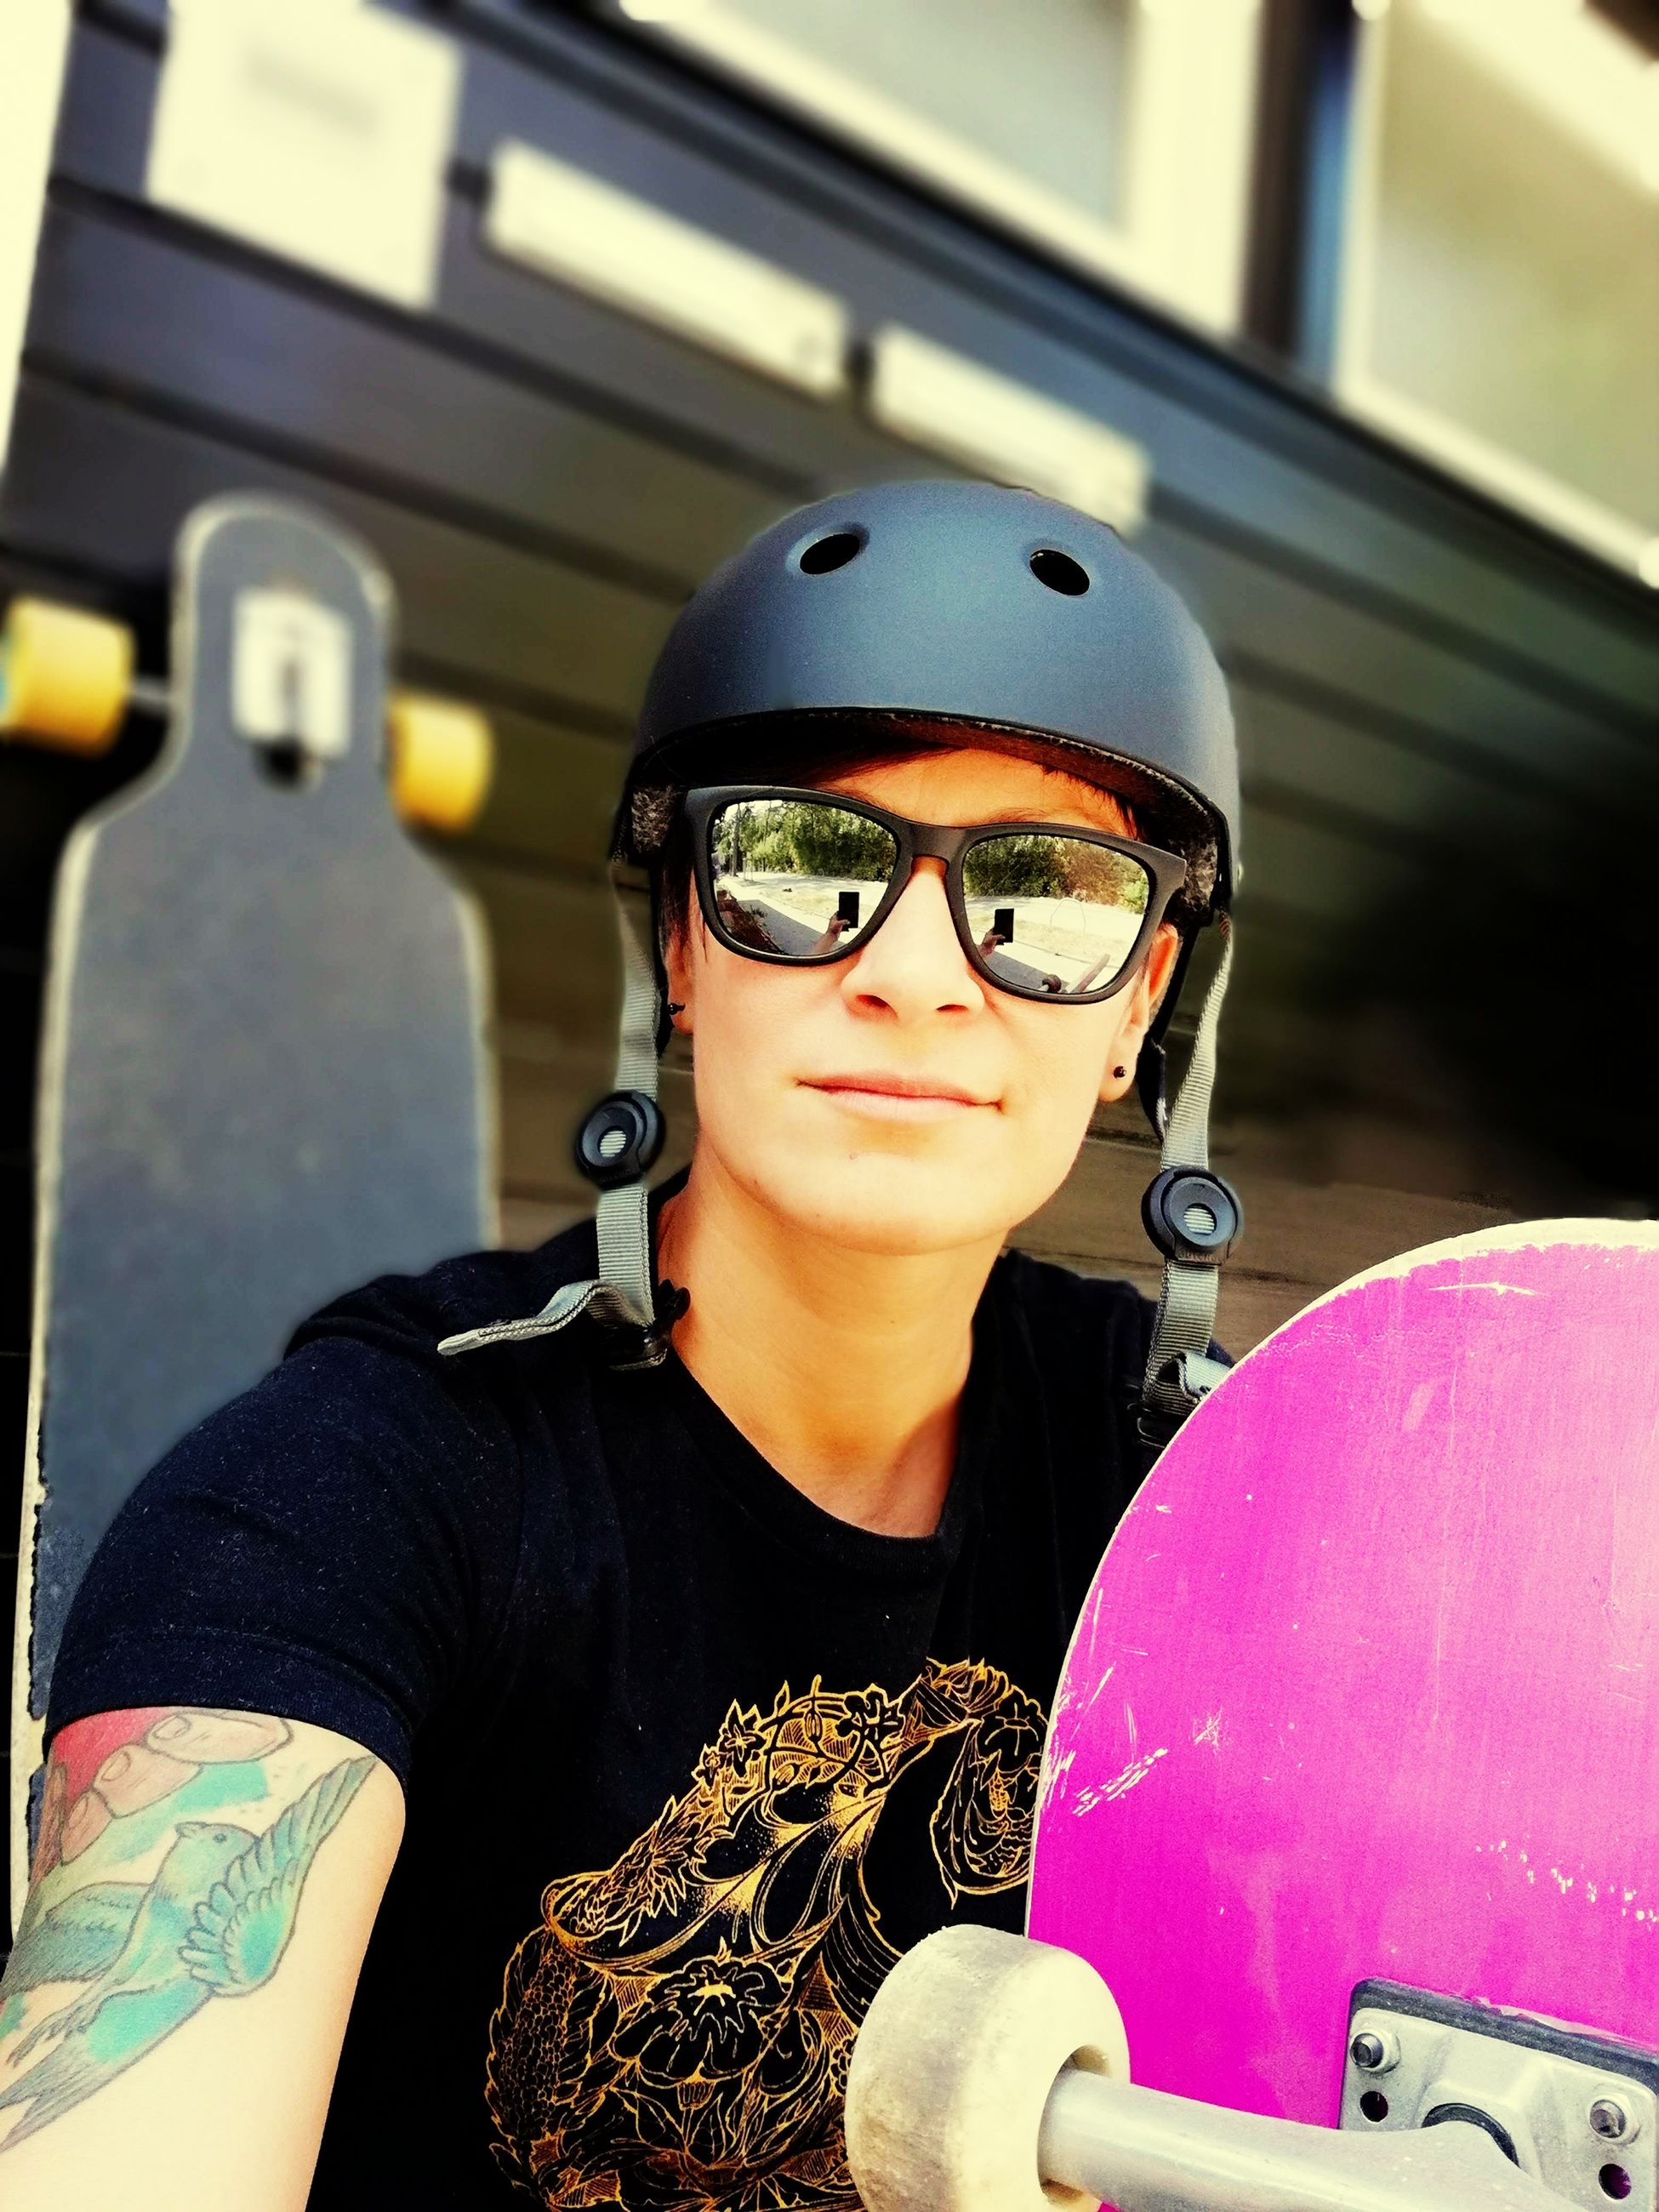 Portrait of woman wearing sunglasses and sports helmet